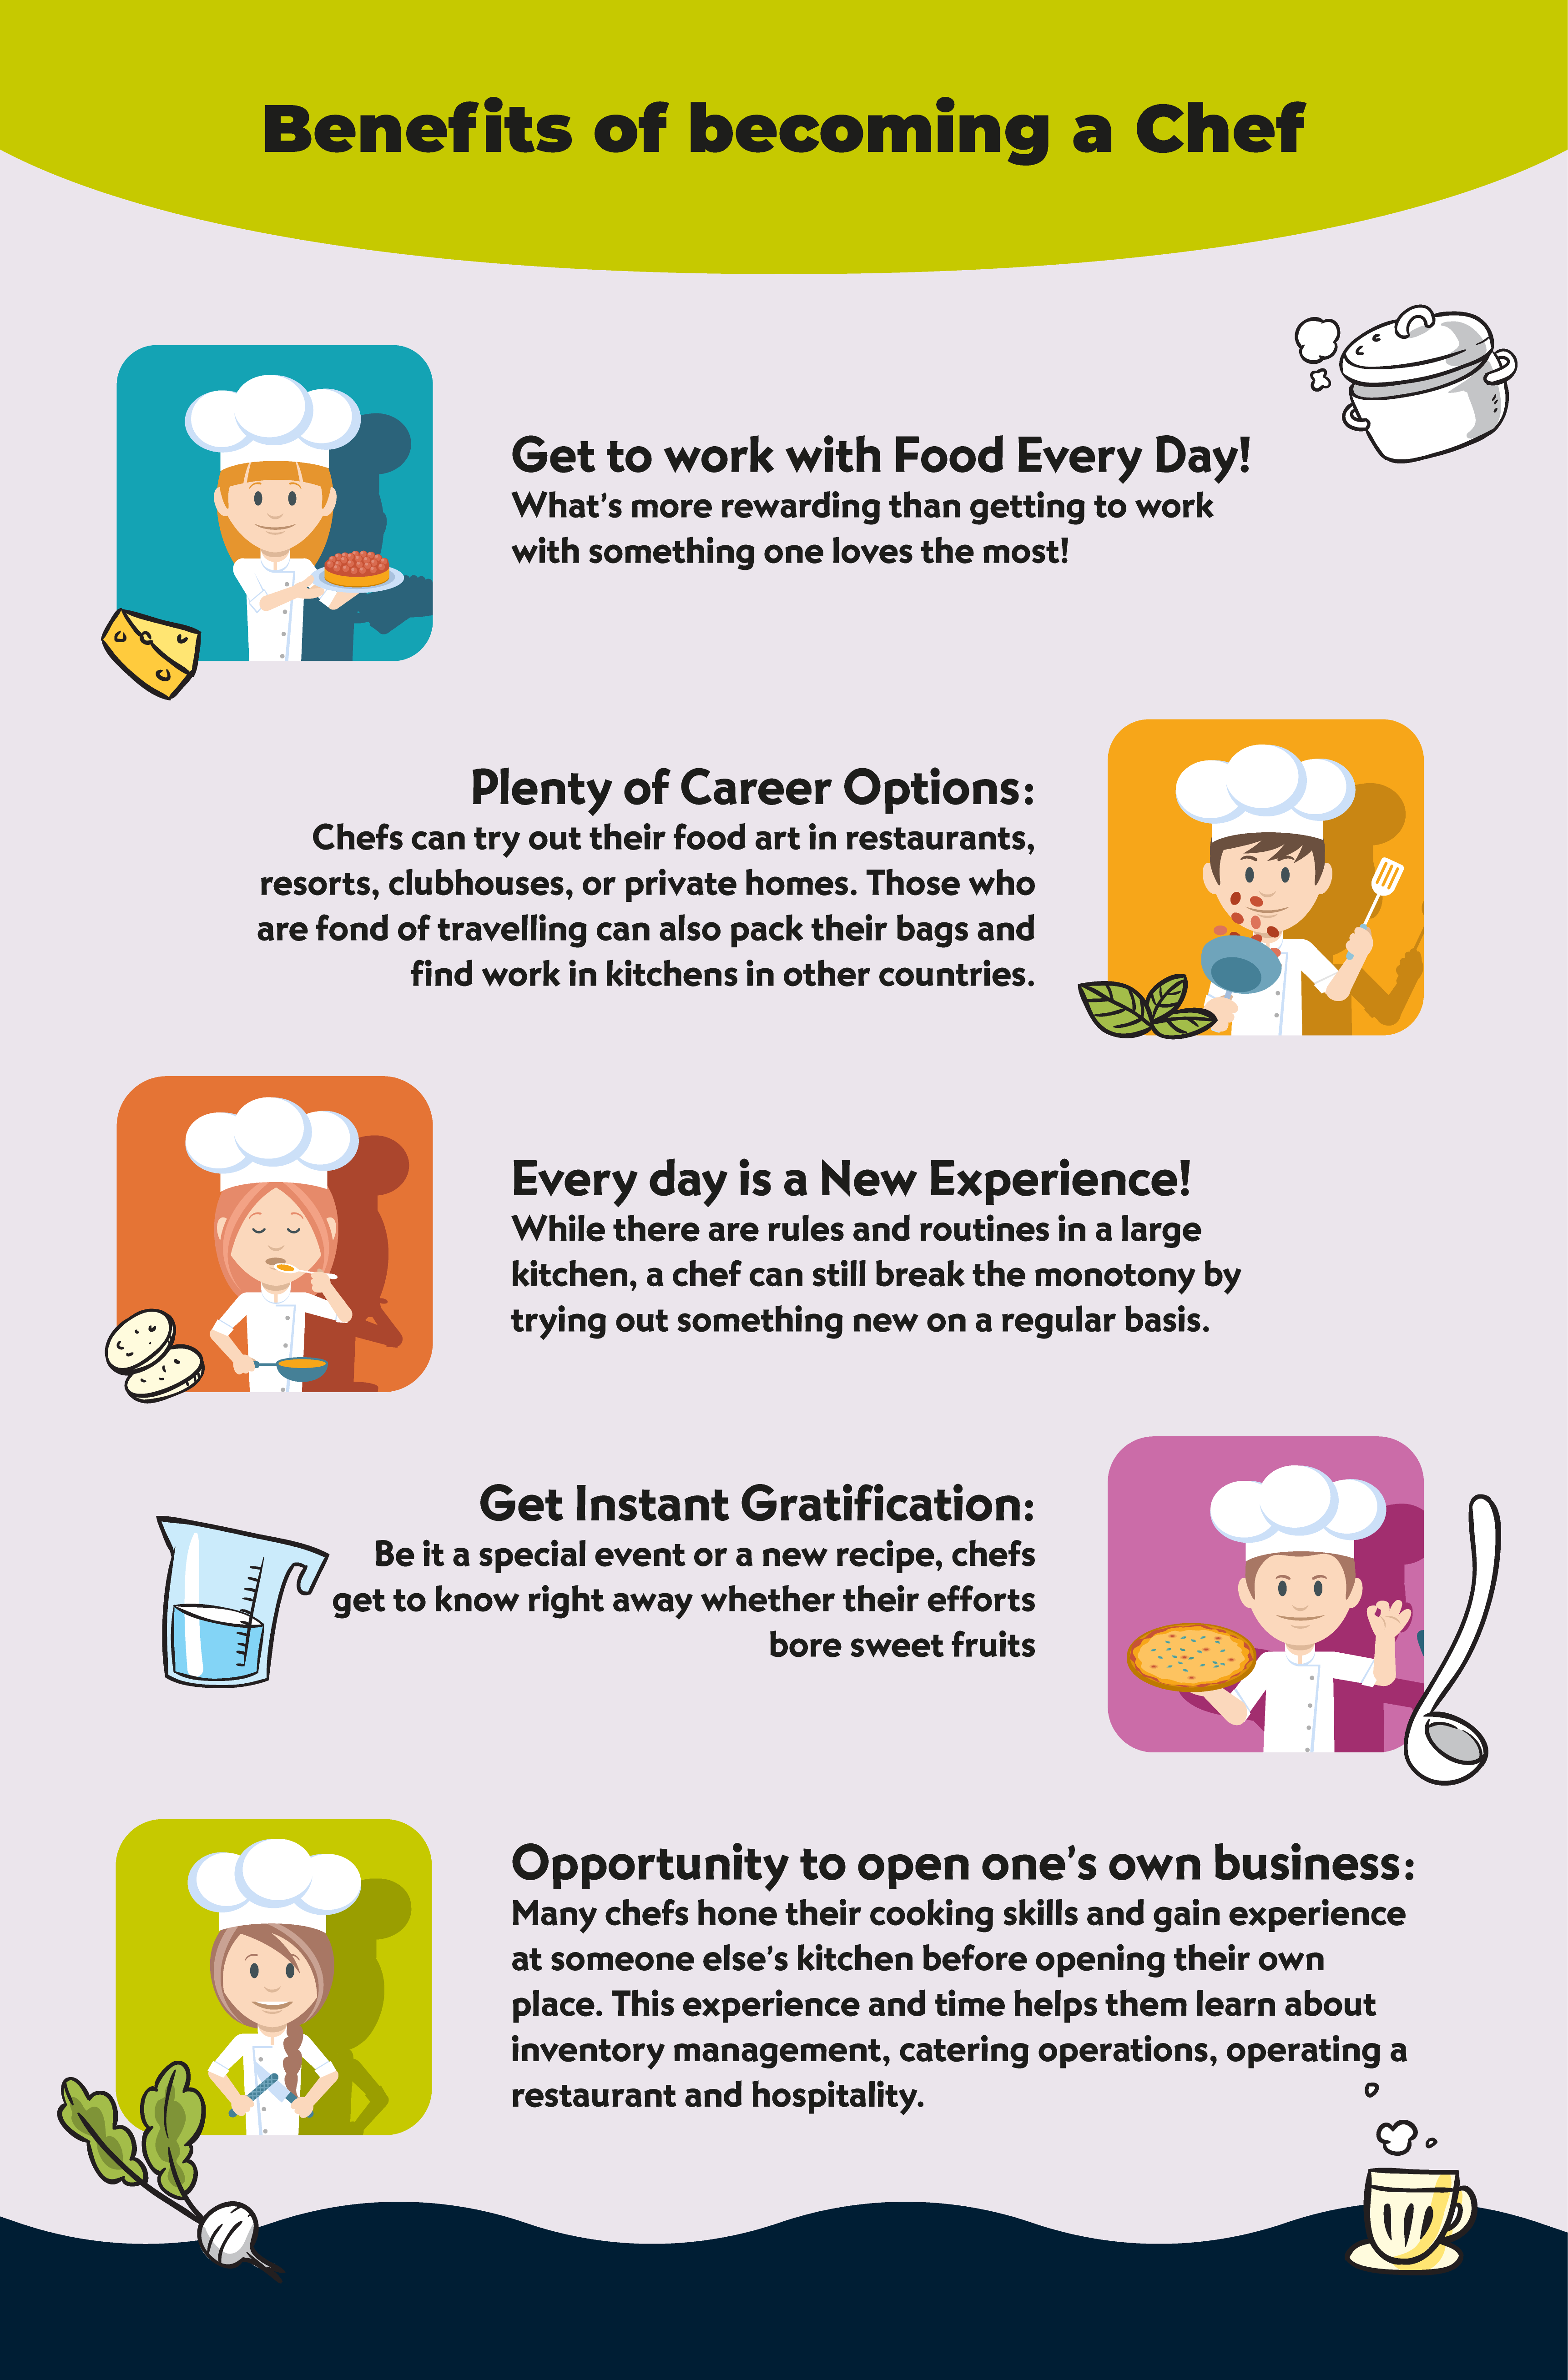 Why become a chef?